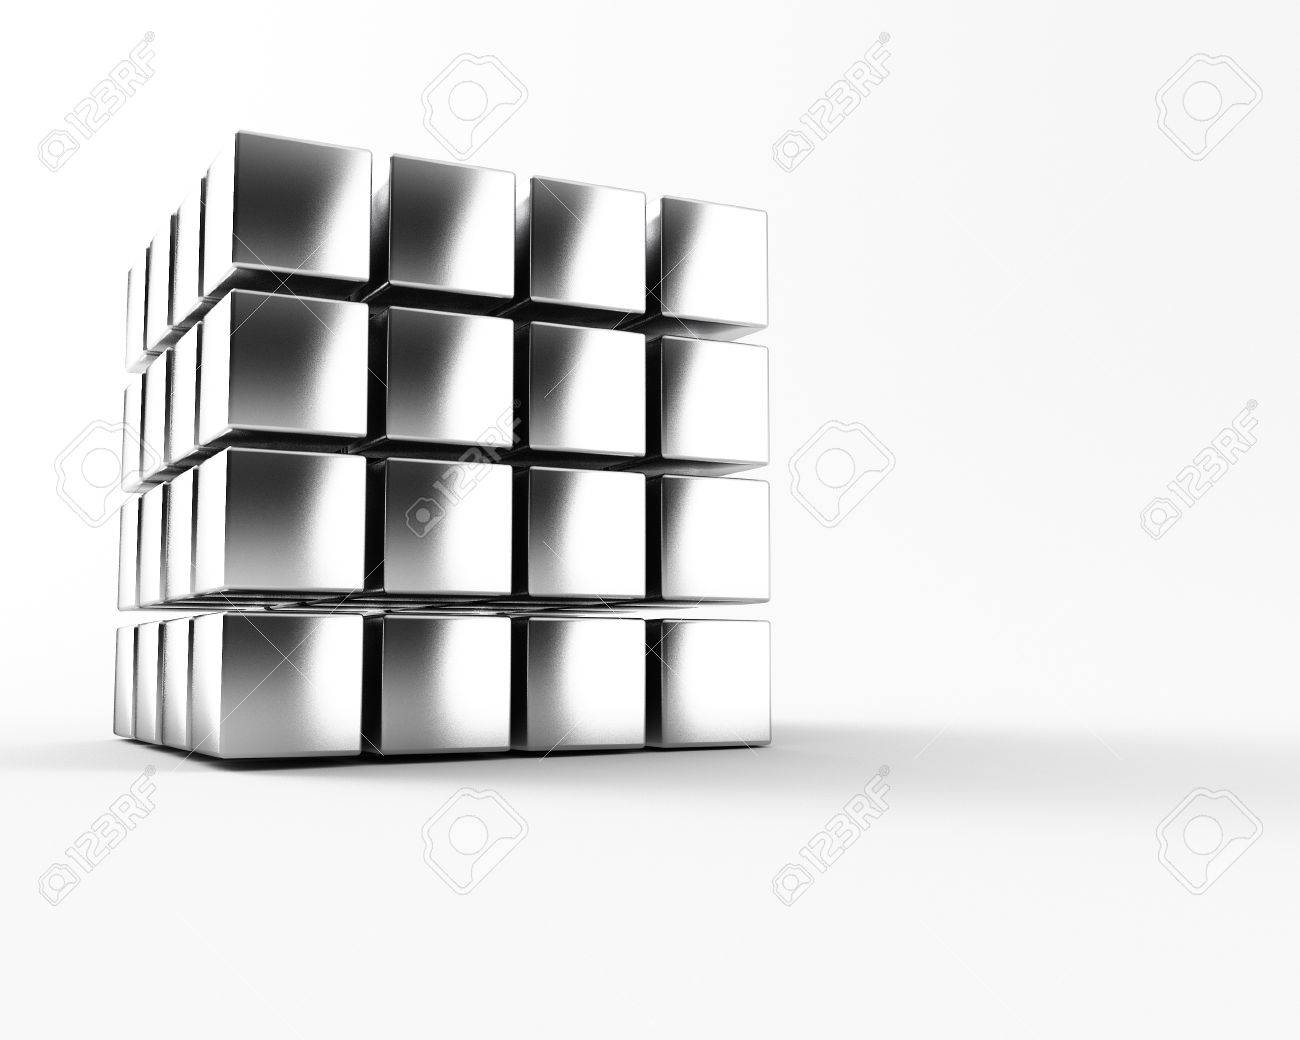 A group of cubes on a white background Stock Photo - 8983990